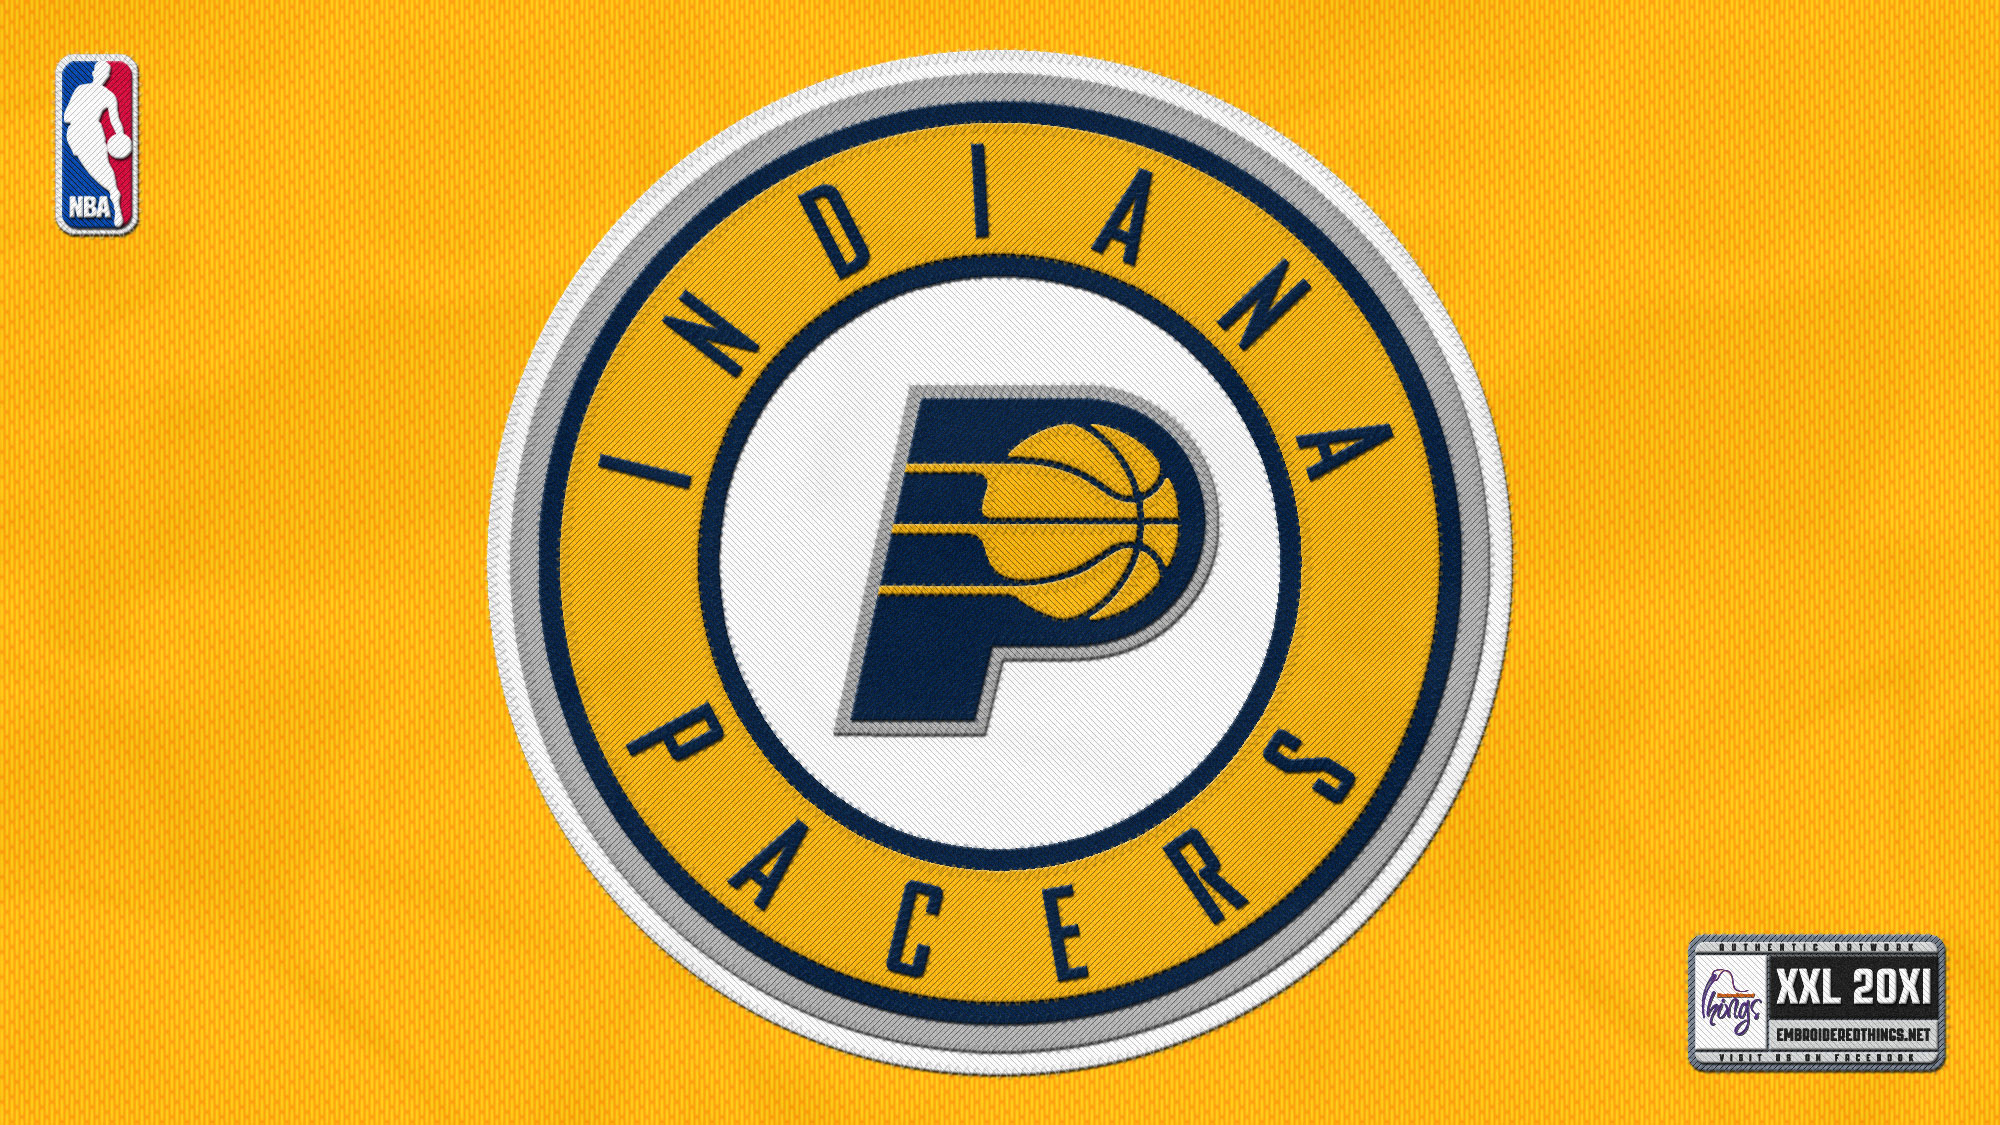 INDIANA PACERS nba basketball 6 wallpaper background 2000x1125